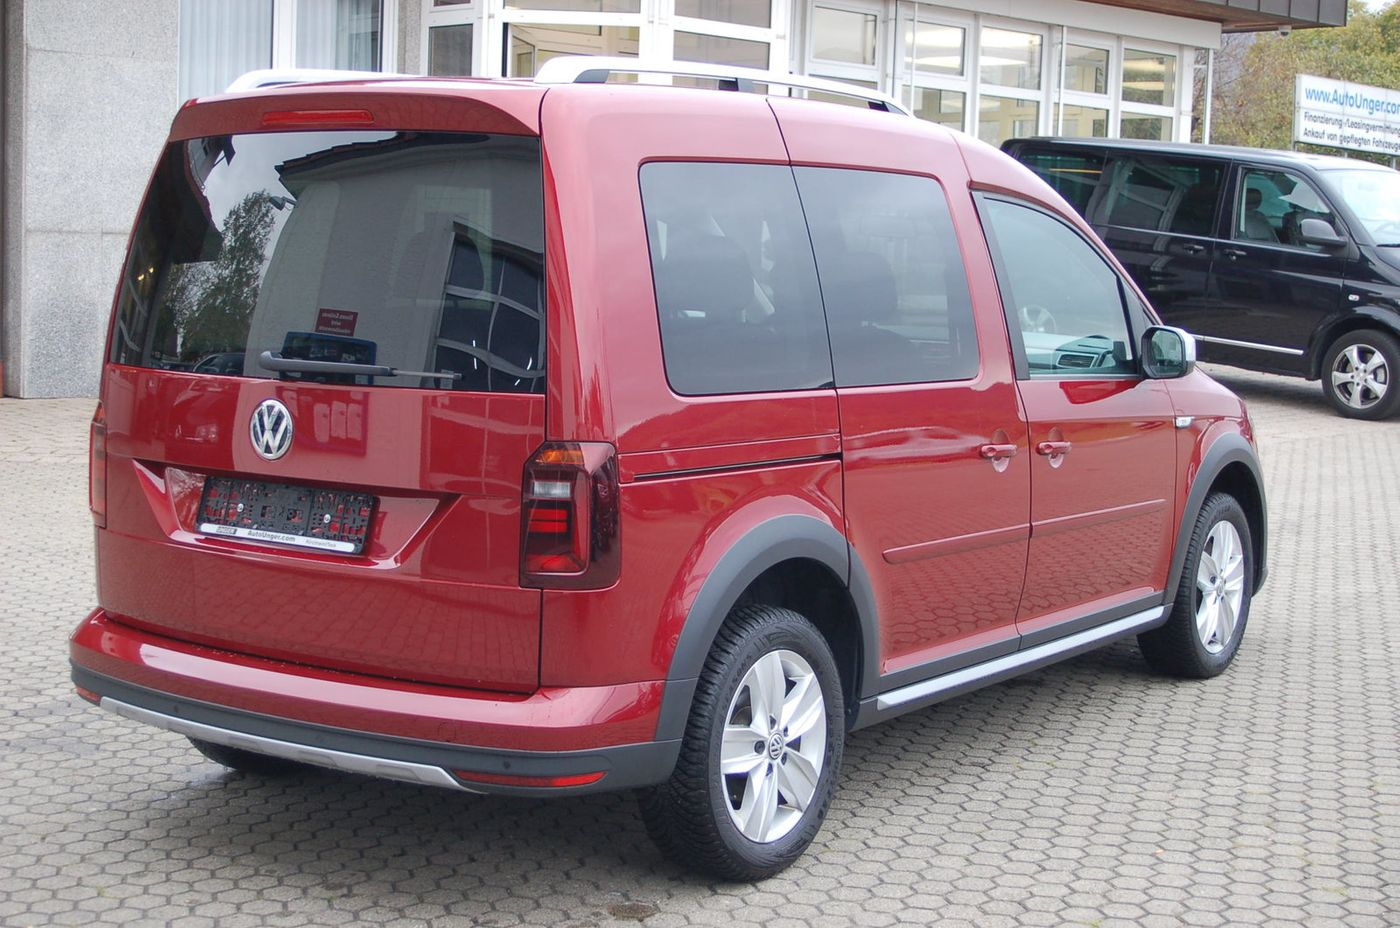 vw caddy alltrack navi pdc shz gebrauchtwagen kombi. Black Bedroom Furniture Sets. Home Design Ideas